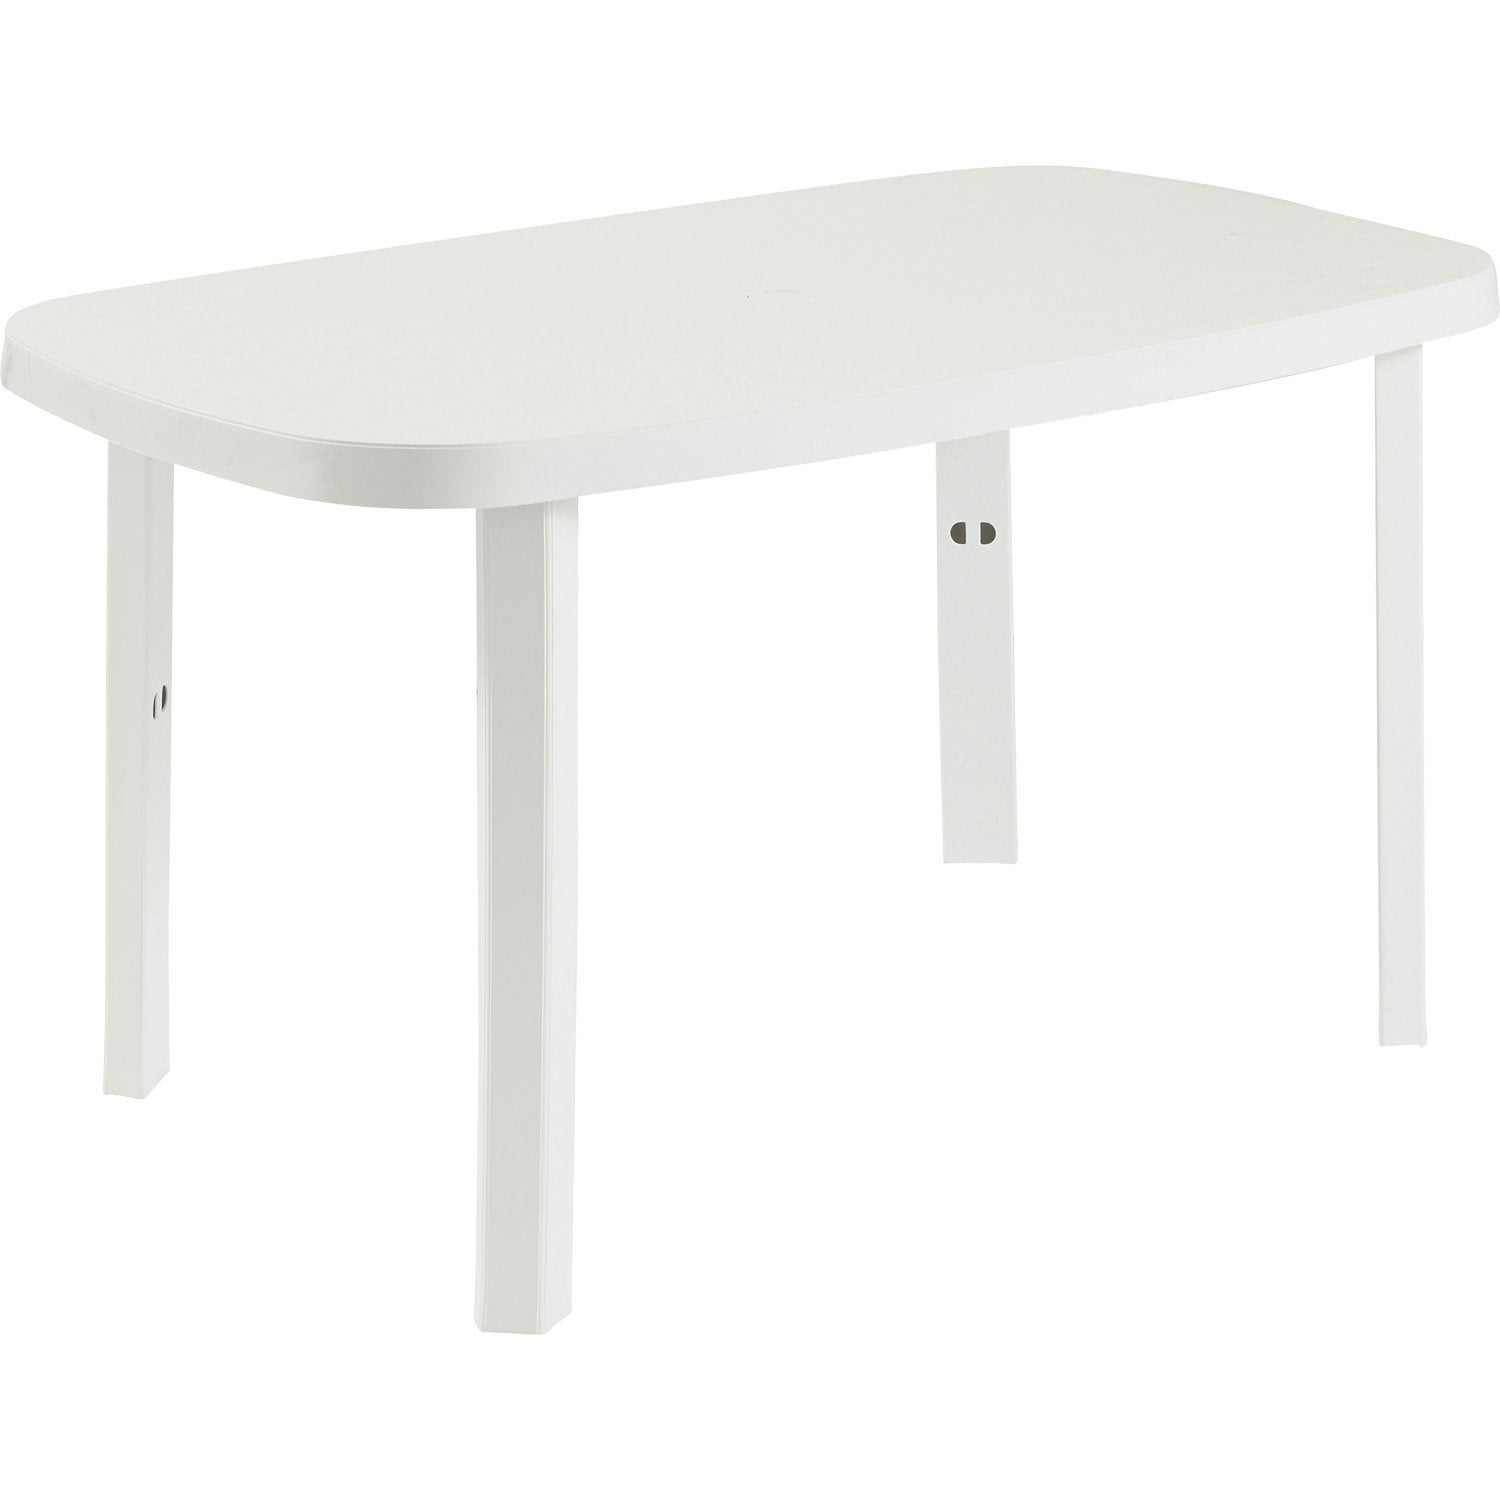 Table de jardin otello ovale blanc 2 personnes leroy merlin - Table de jardin blanche ...